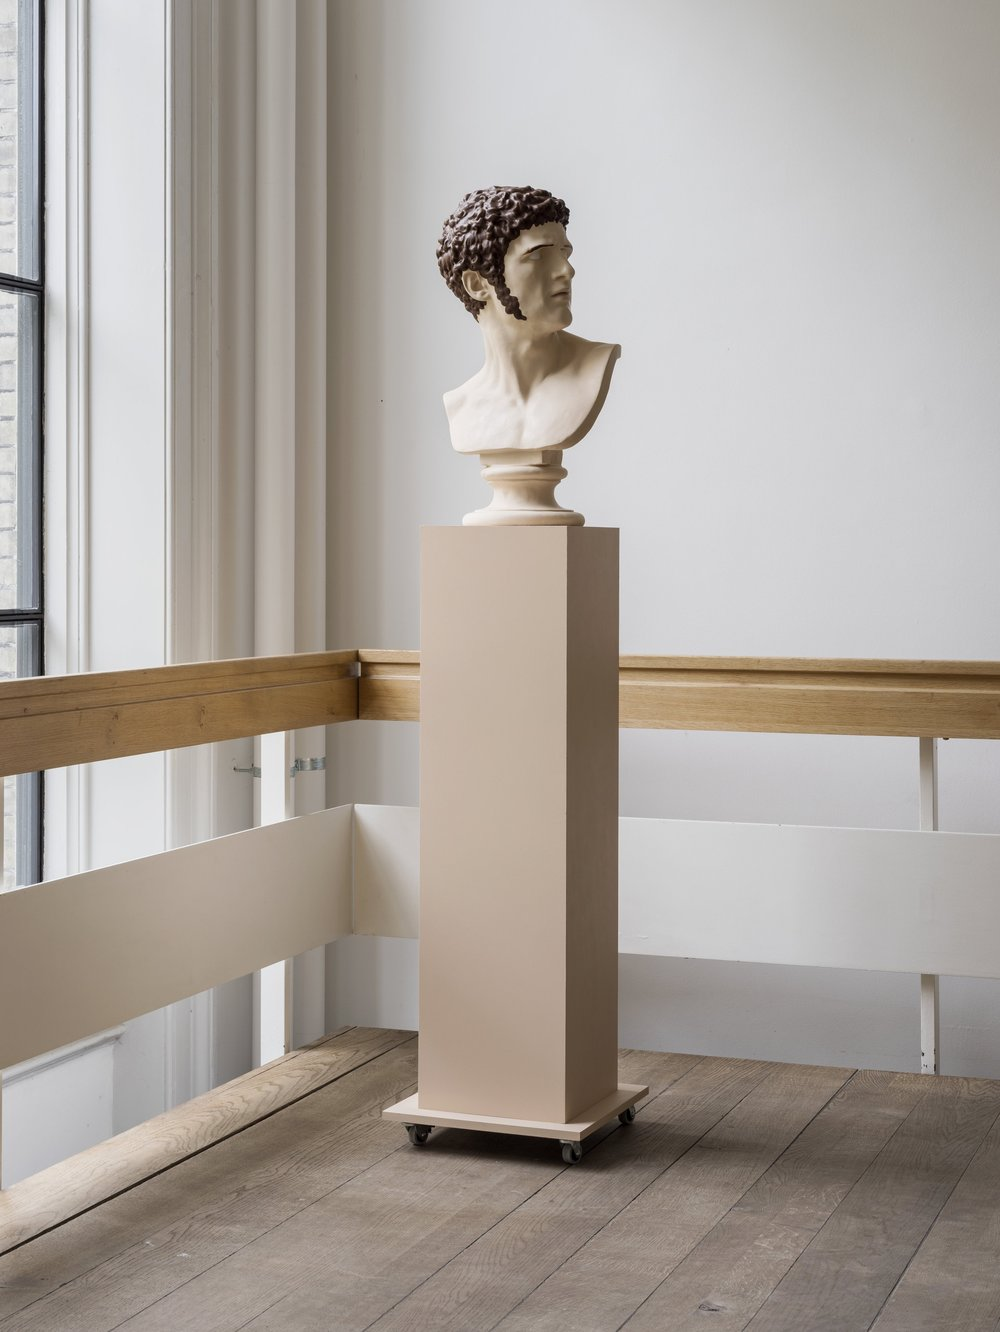 Installation view. The first bust out of three.